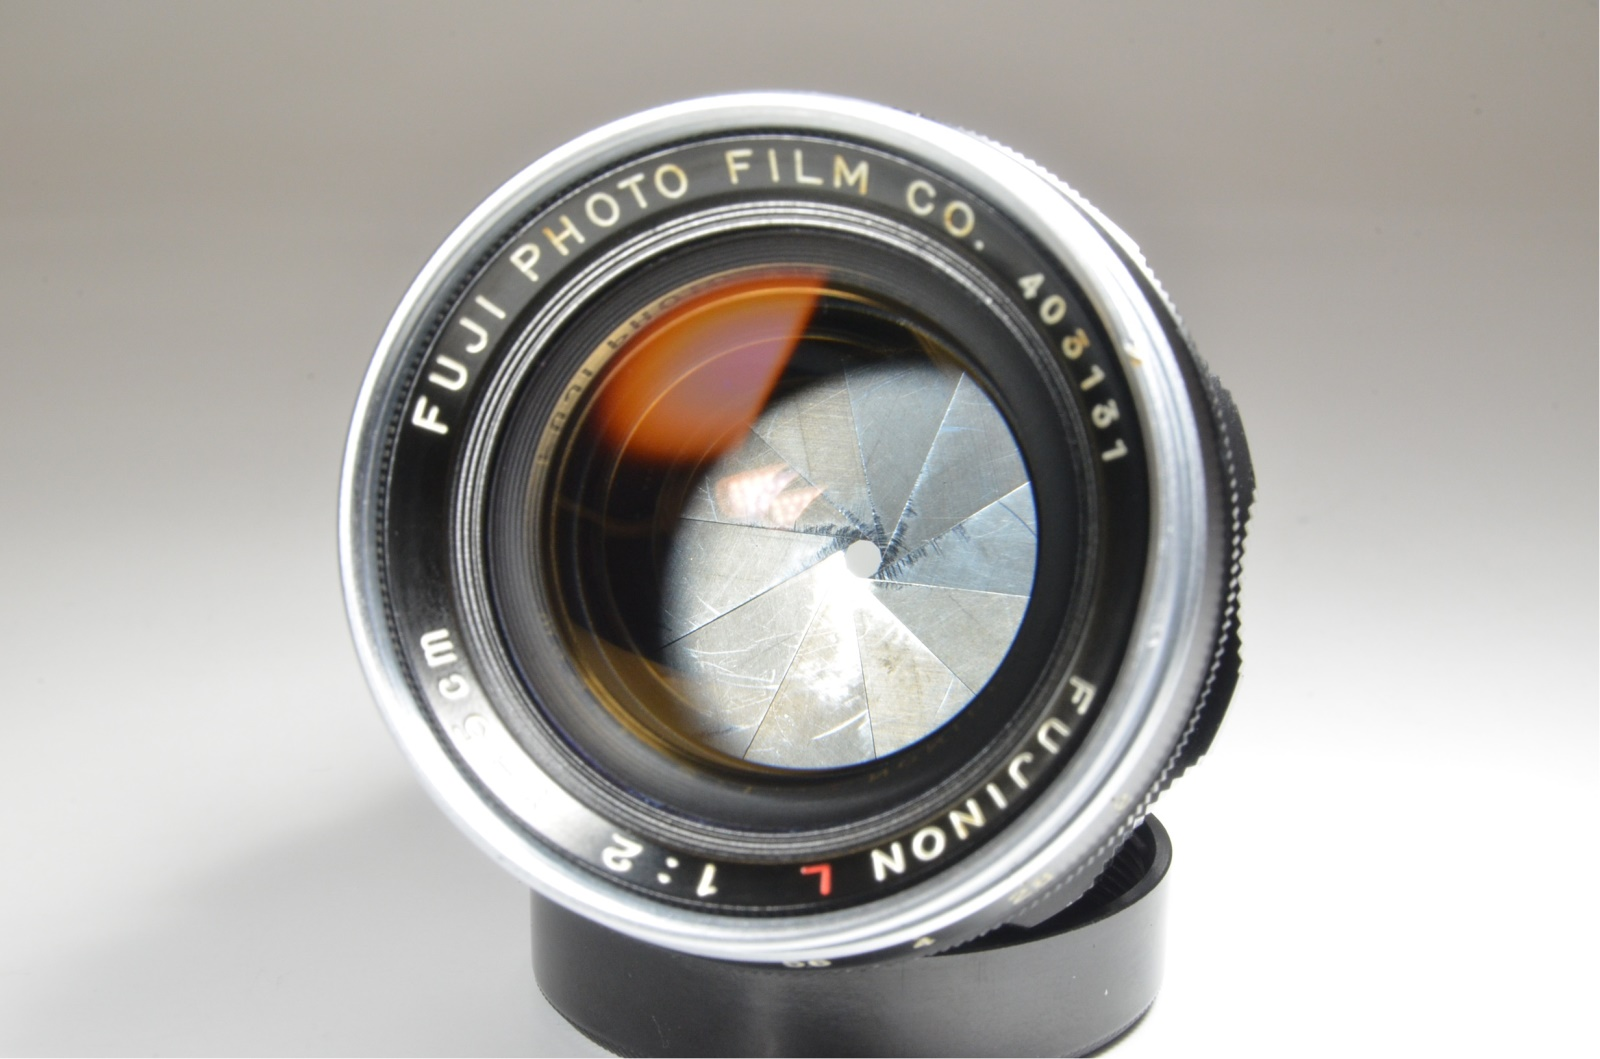 fuji fujinon 50mm 5cm f2 l mount lens for leica m39 l39 ltm shooting tested